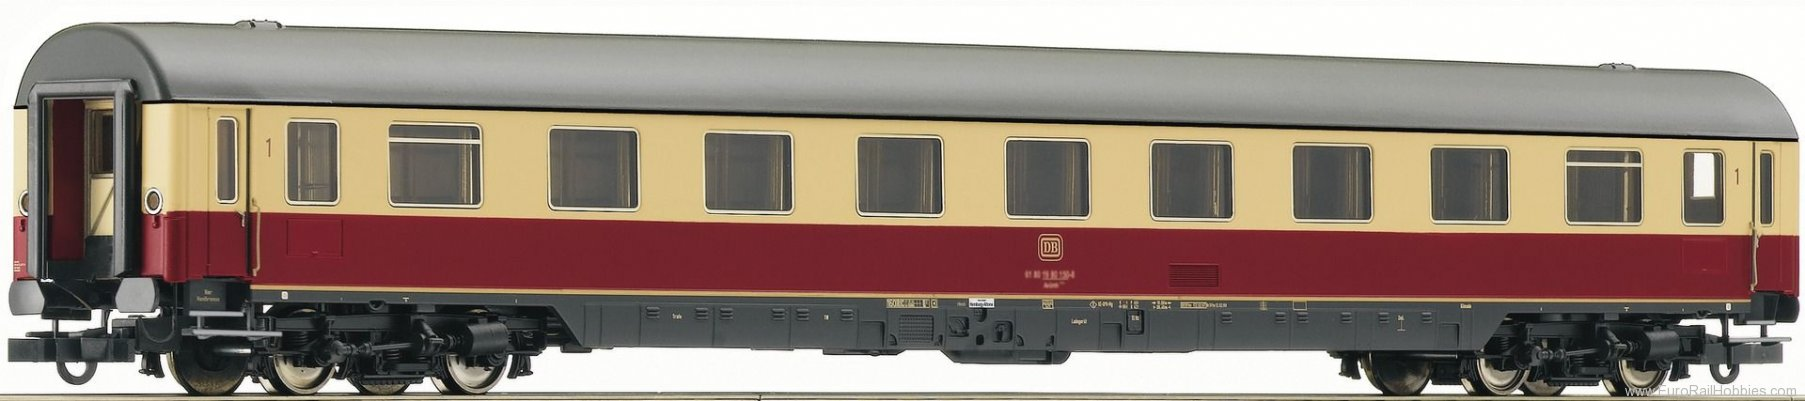 Roco 64511 DB InterCity Compartment Coach 688 Avmz